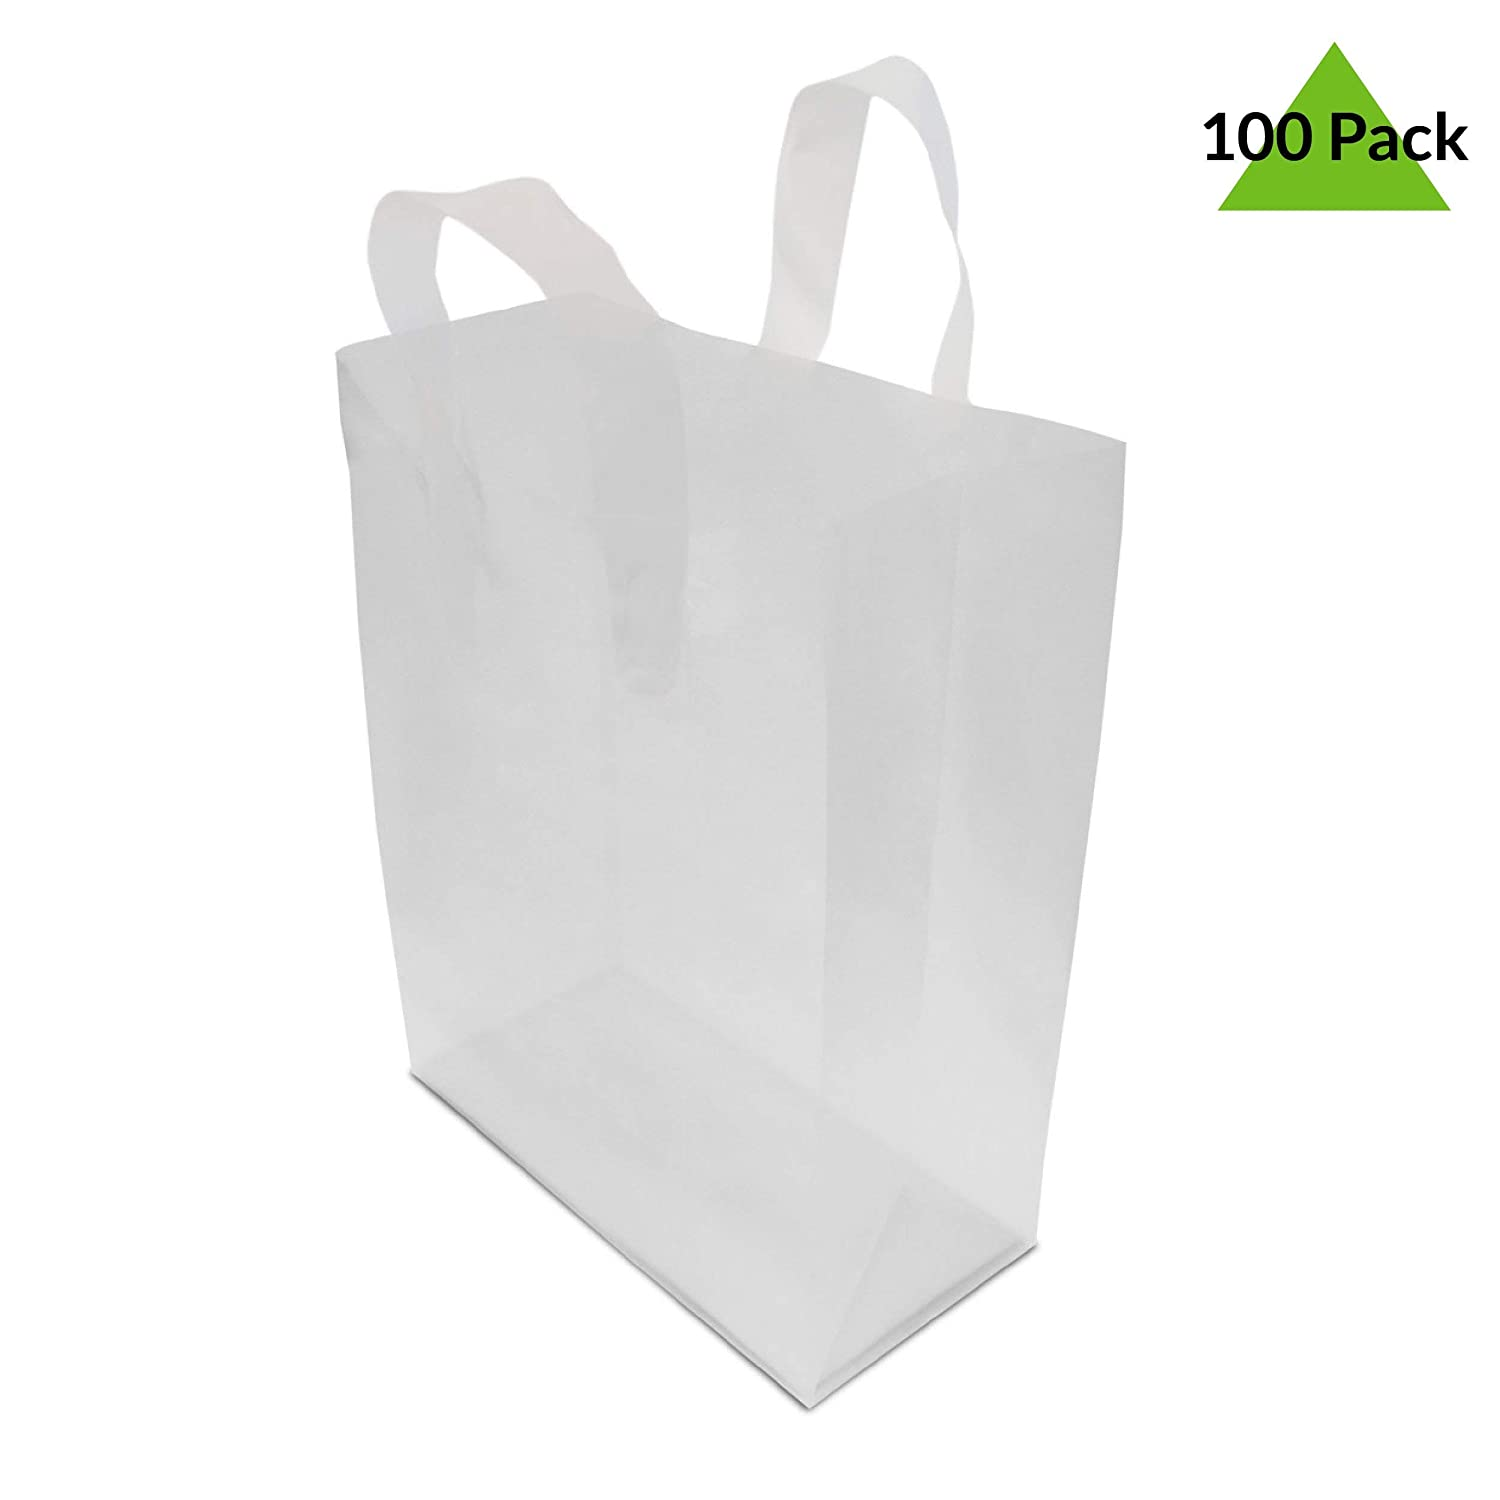 """8x4x10"""" 100 Pcs. Frosted Clear Plastic Bags with Handles, Shopping Bags, Gift Bags, Take Out Bags with Cardboard Bottom"""